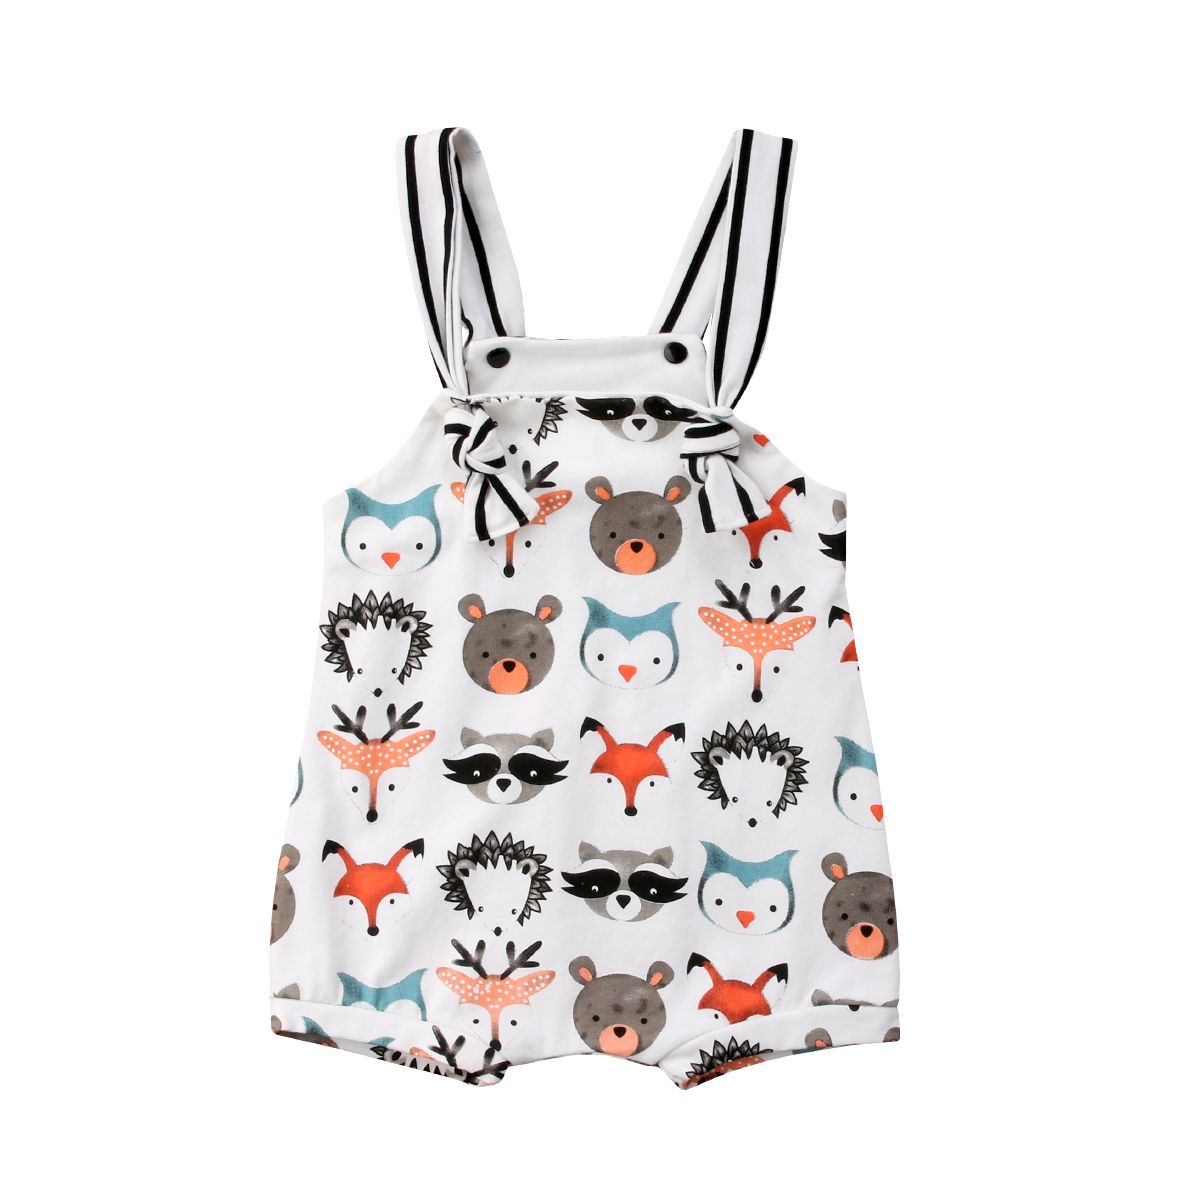 Newborn Baby Girl   Romper   Cartoon Animals Print Jumpsuit Sleeveless Strap Sunsuit Outfits Clothes